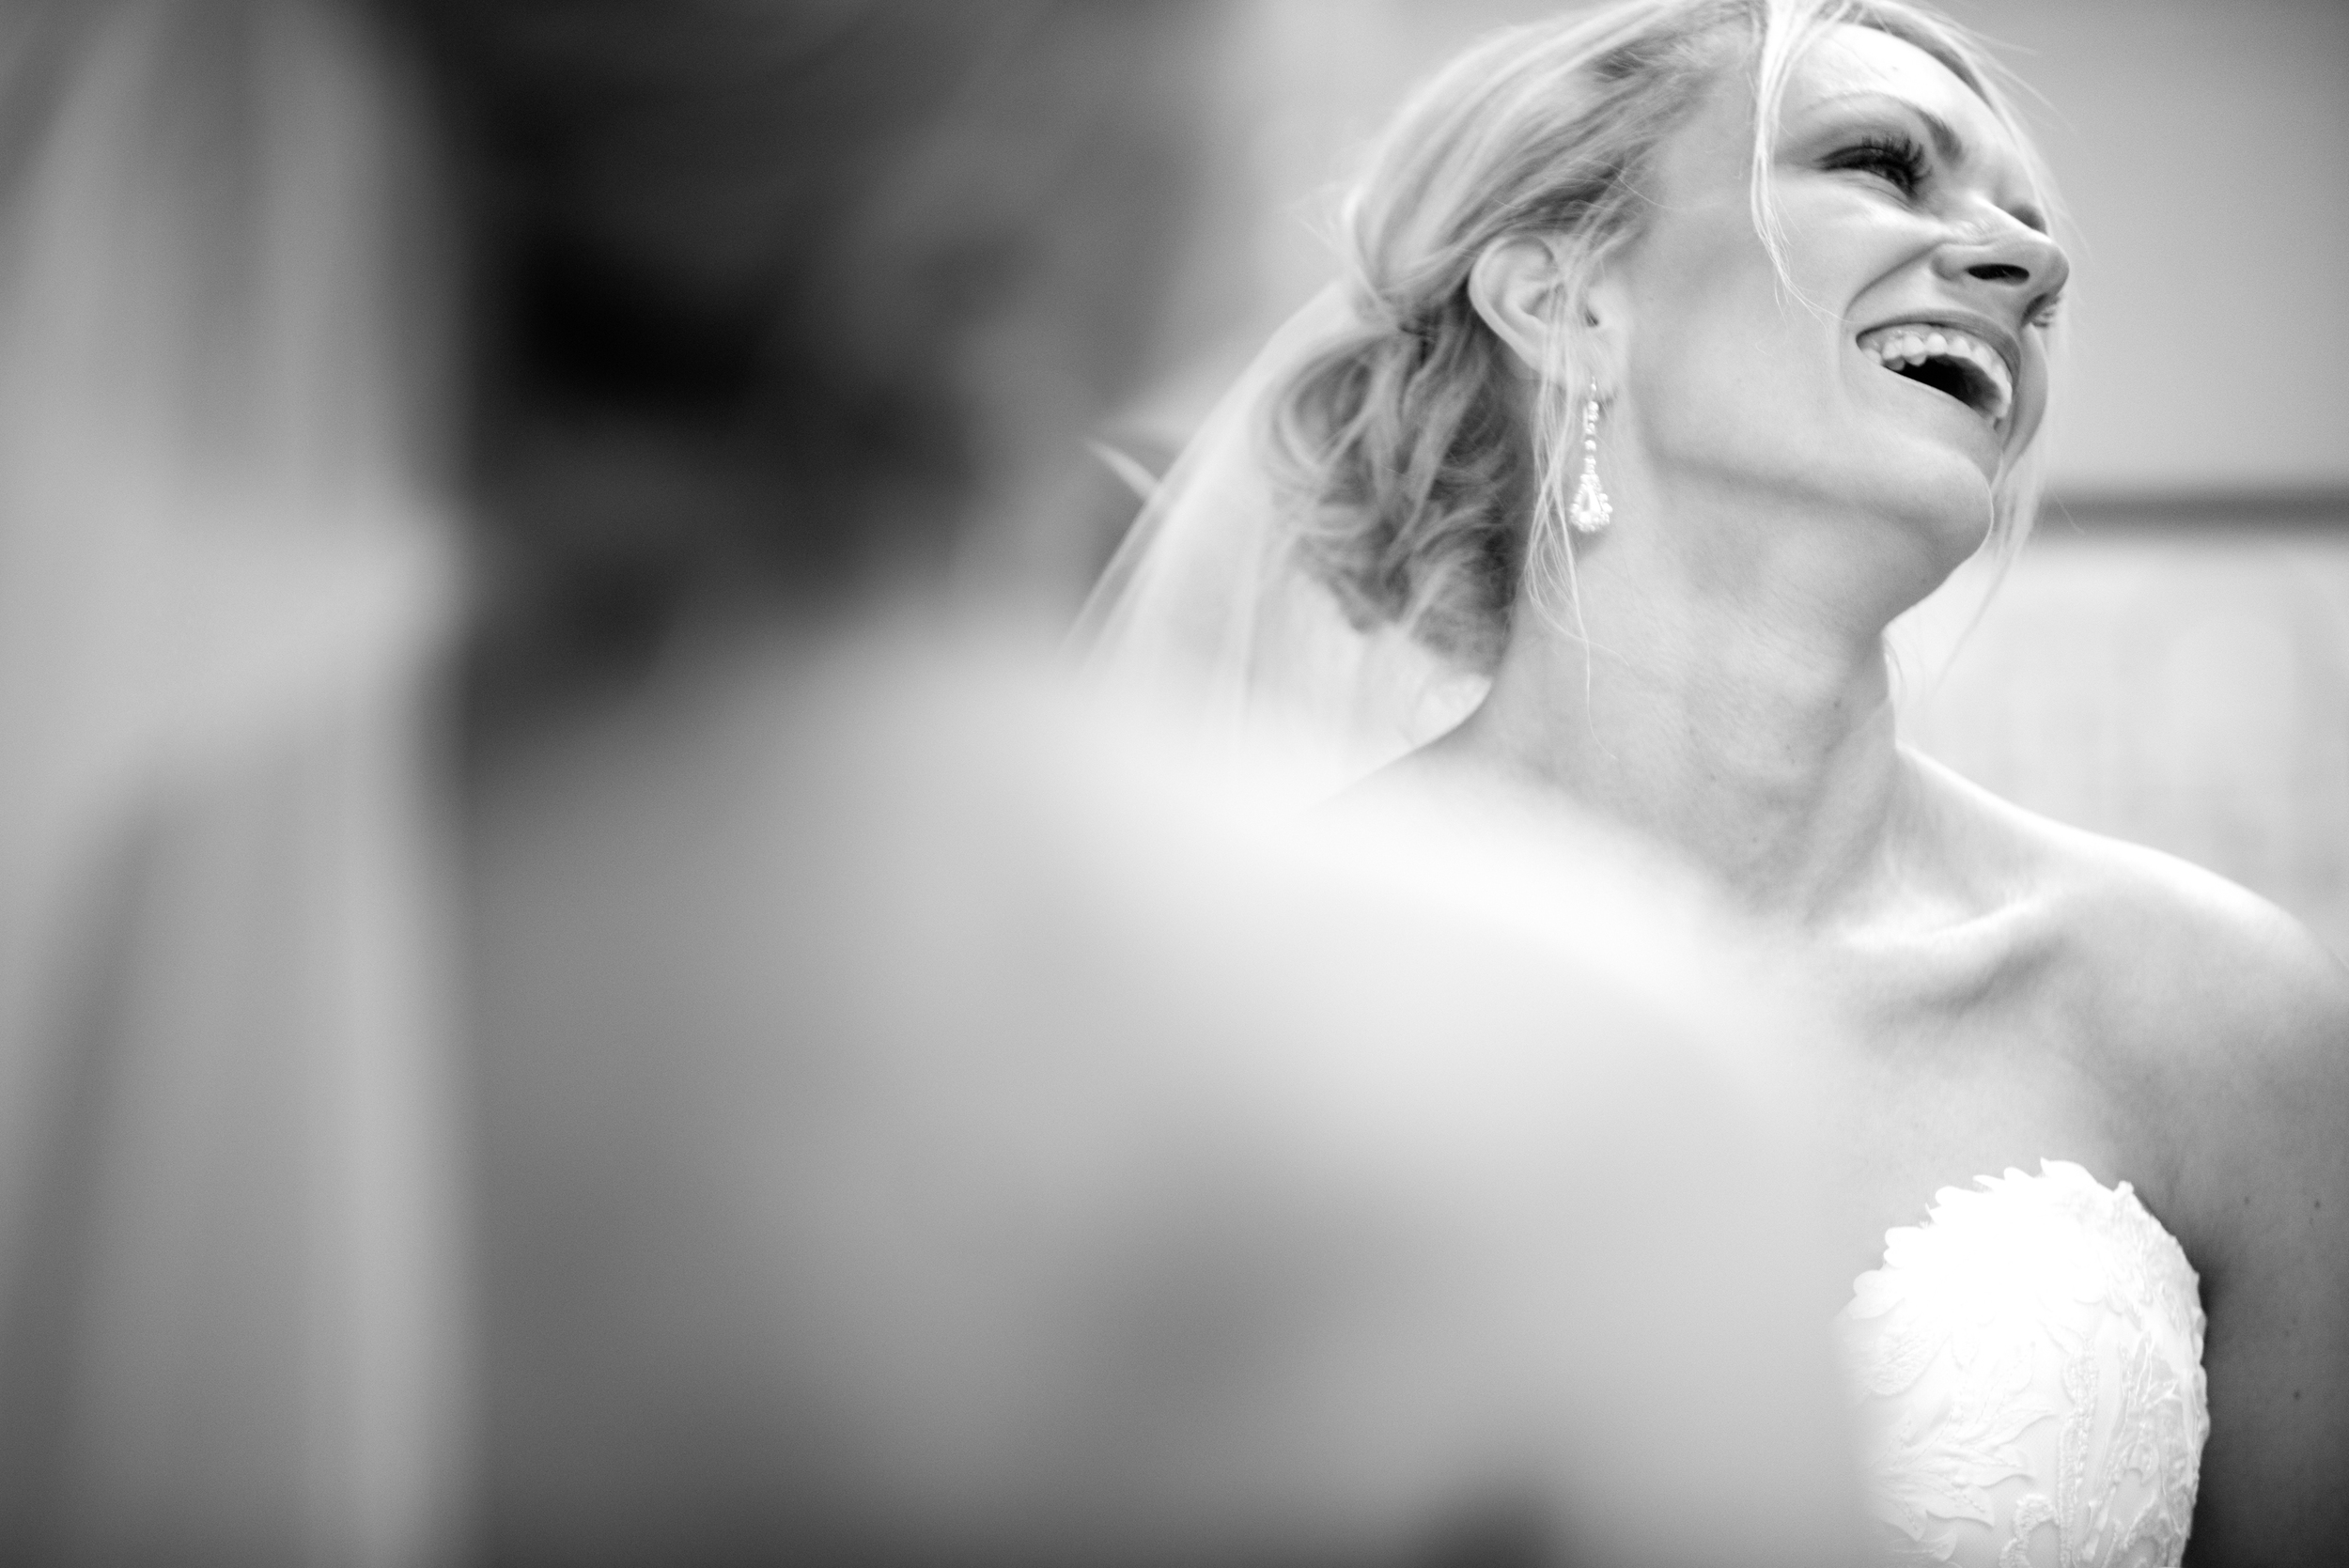 009Koper-Ekiert-Roanoke-Wedding-Virginia-Photographer-mattrossphotography.com.jpg